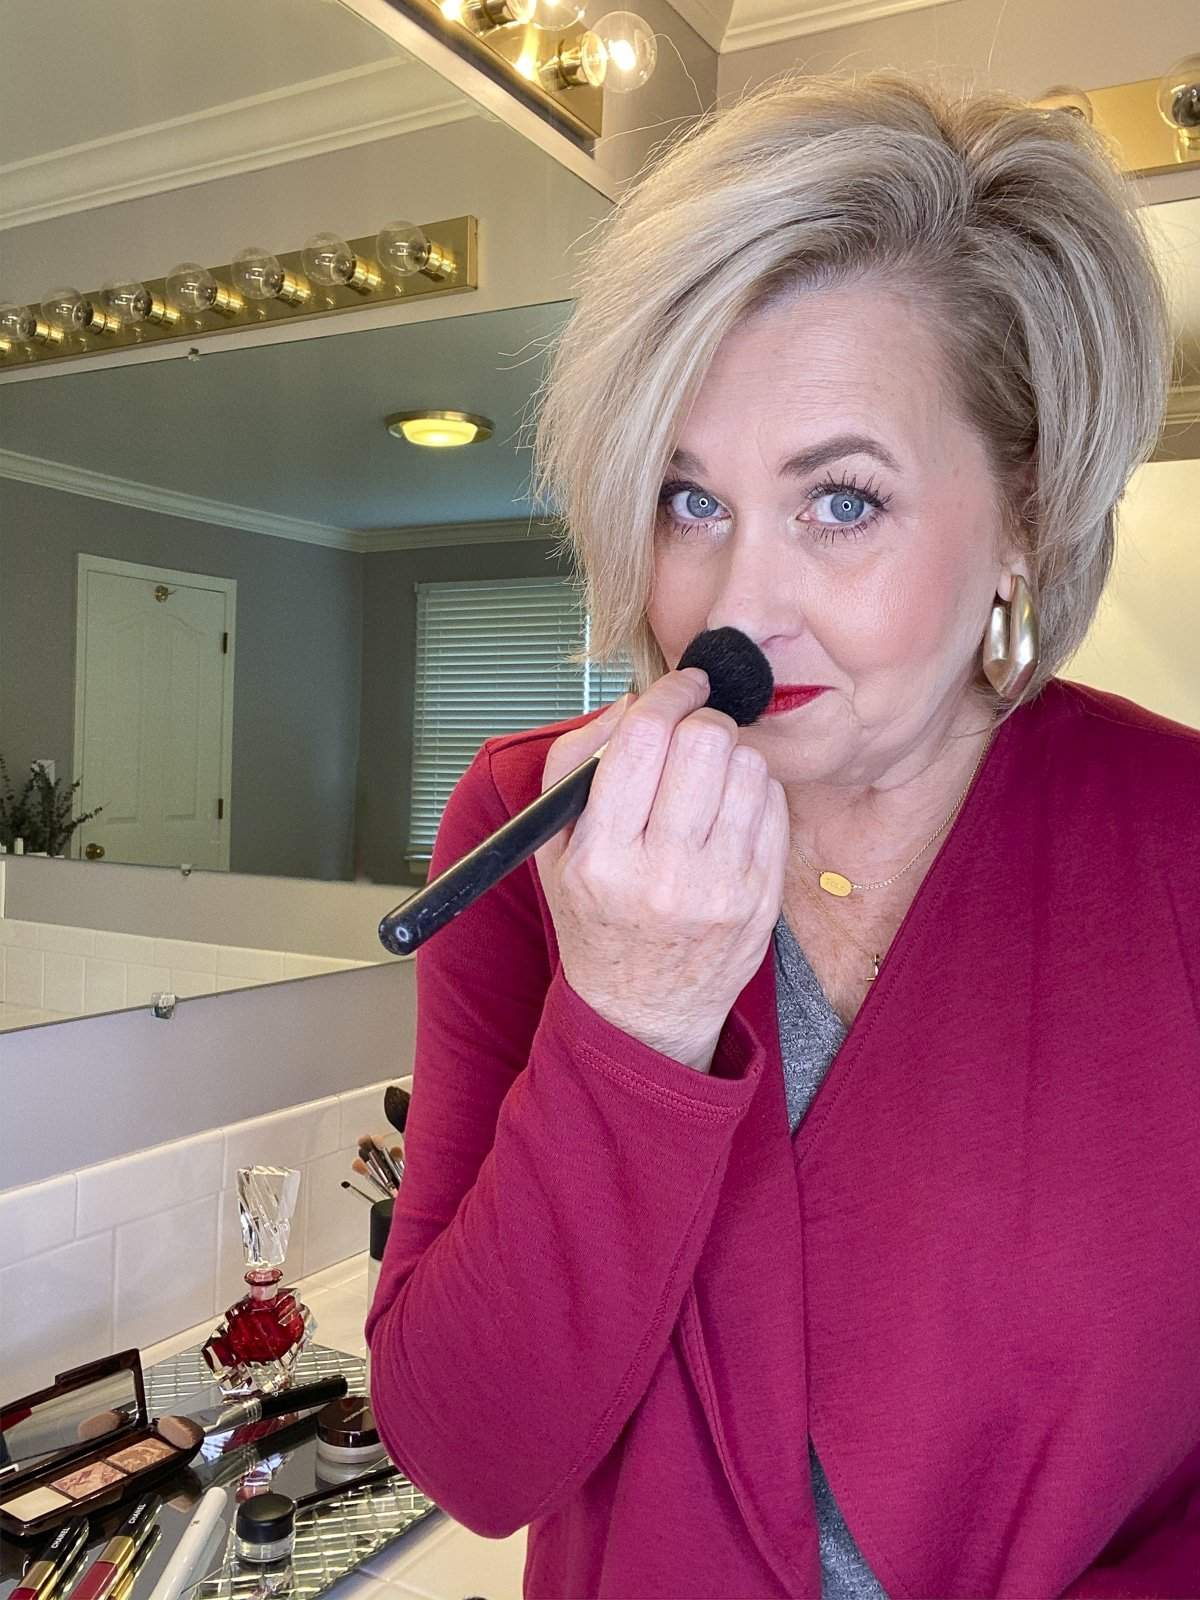 Fashion Blogger 50 Is Not Old powdering her nose with makeup purchased from Nordstrom